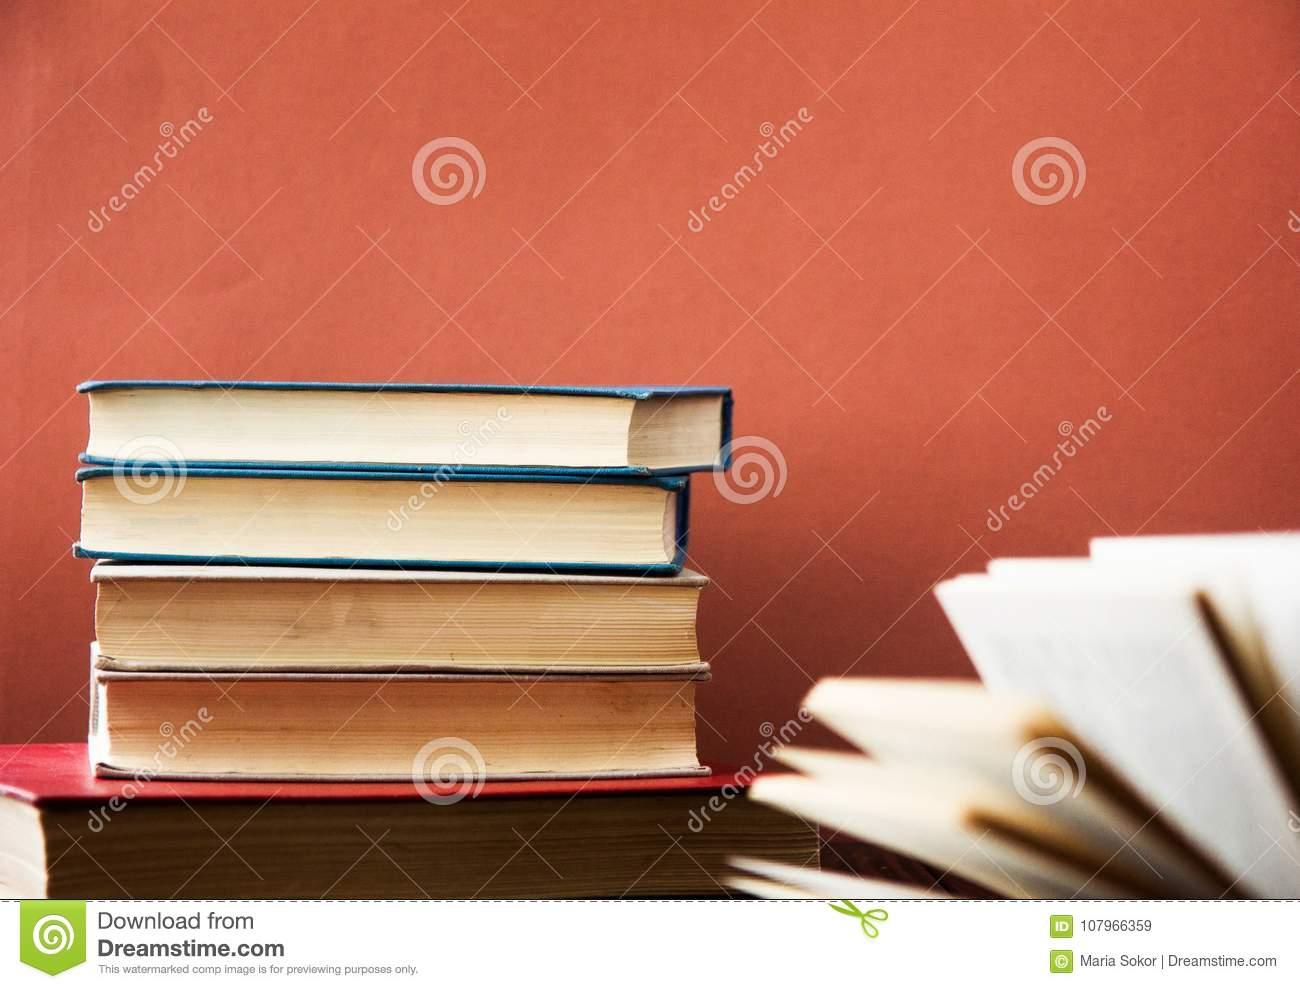 Book Many Books Stack Of Colorful Books Education Background